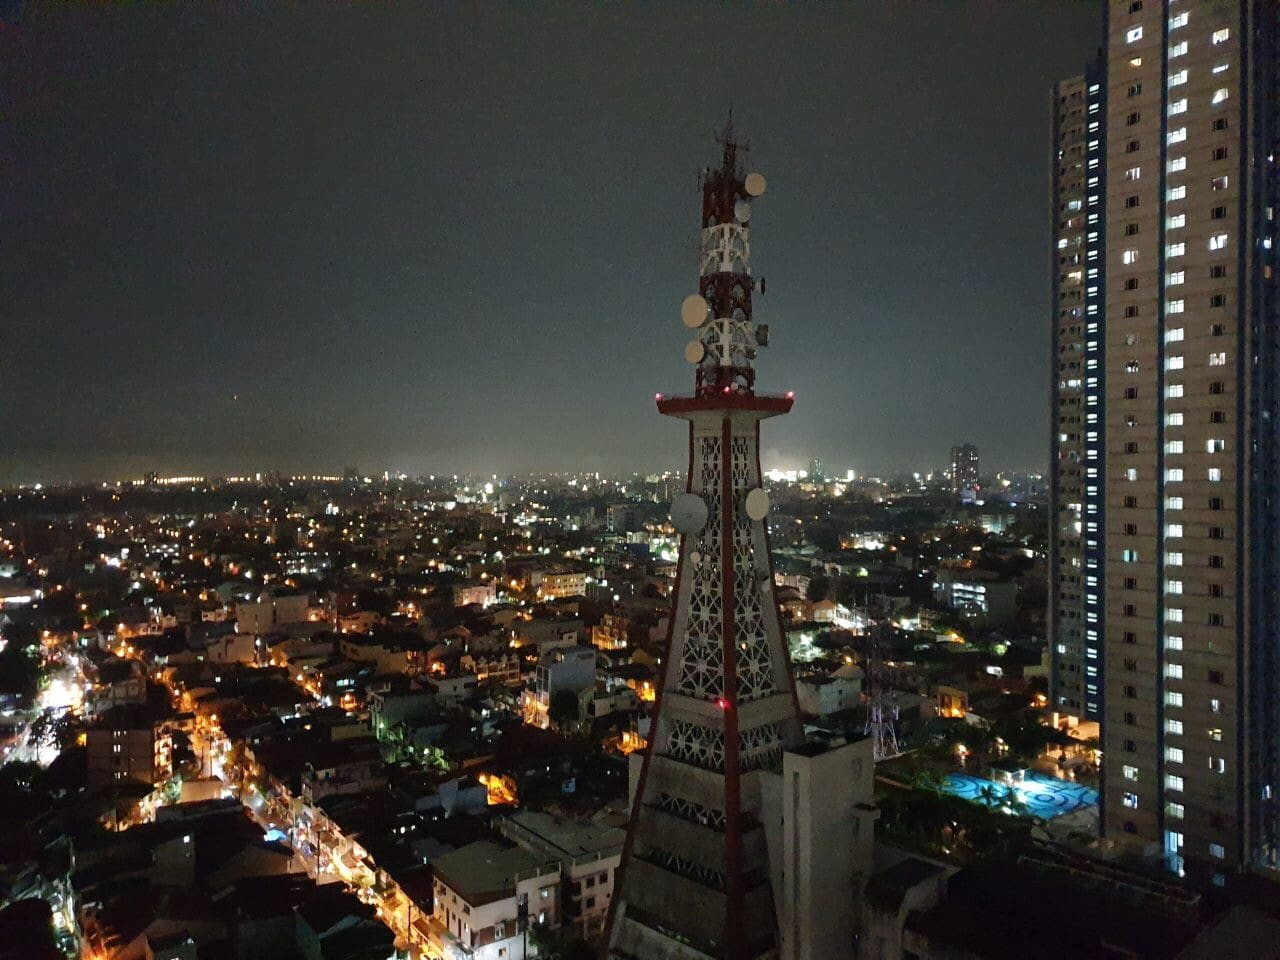 3 bedroom  ideal for family /group of friends staycation condo with panoramic city view at night time